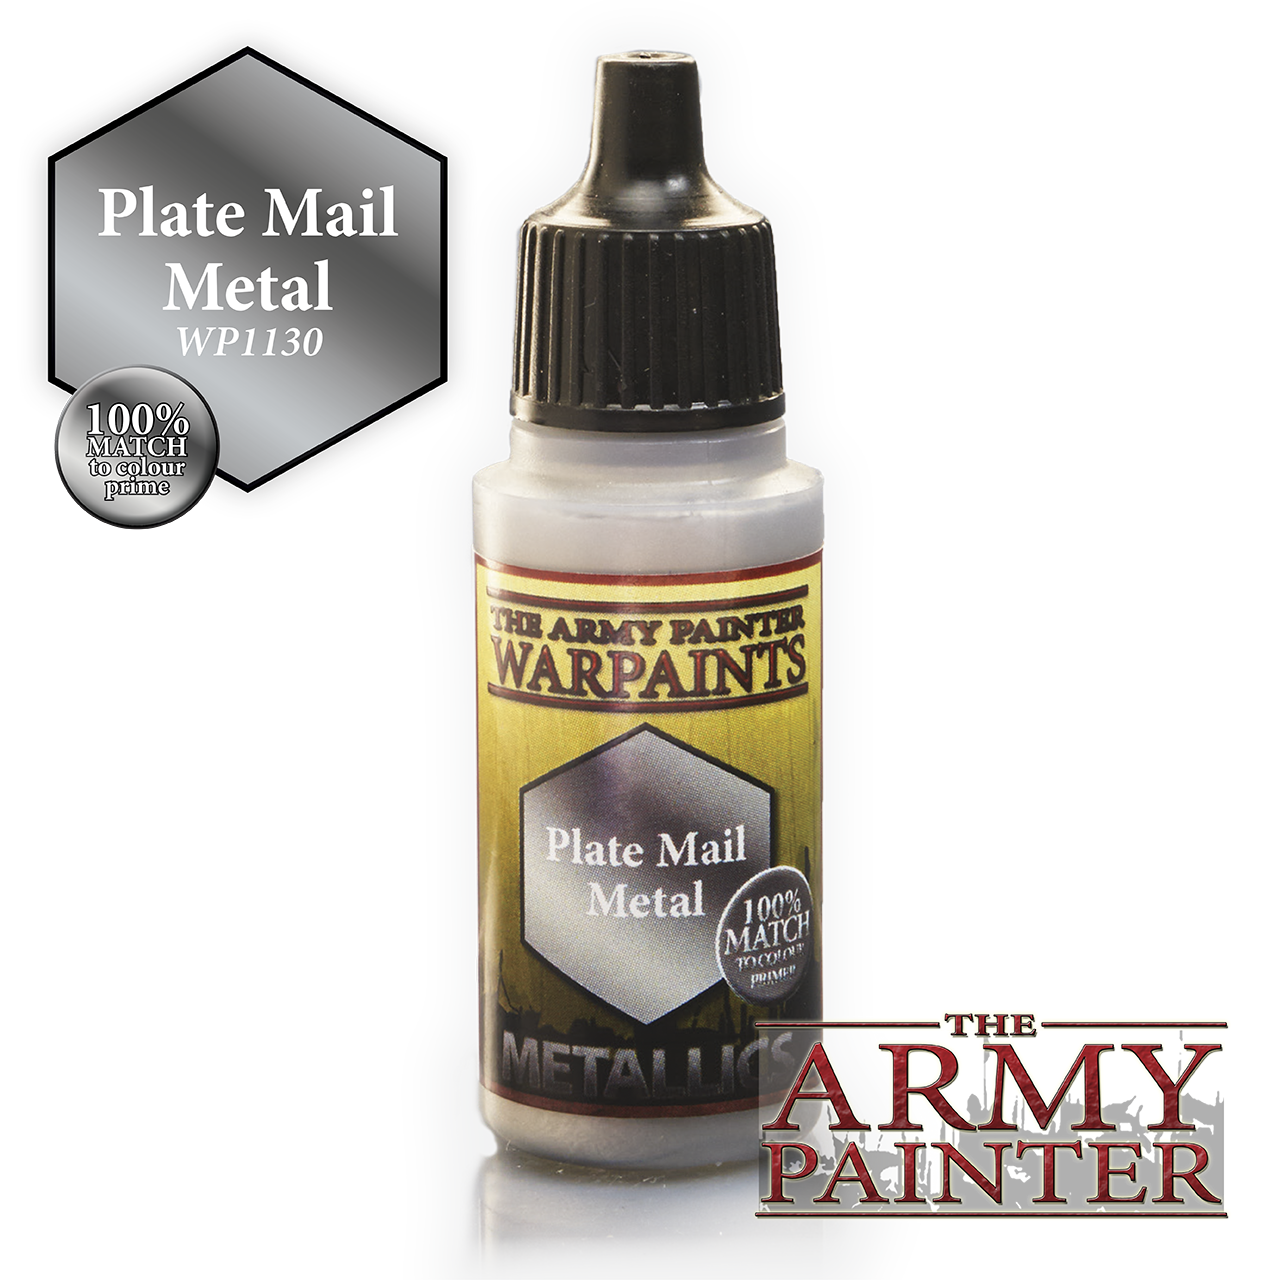 The Army Painter Warpaints Metallics: Plate Mail Metal (18ml)